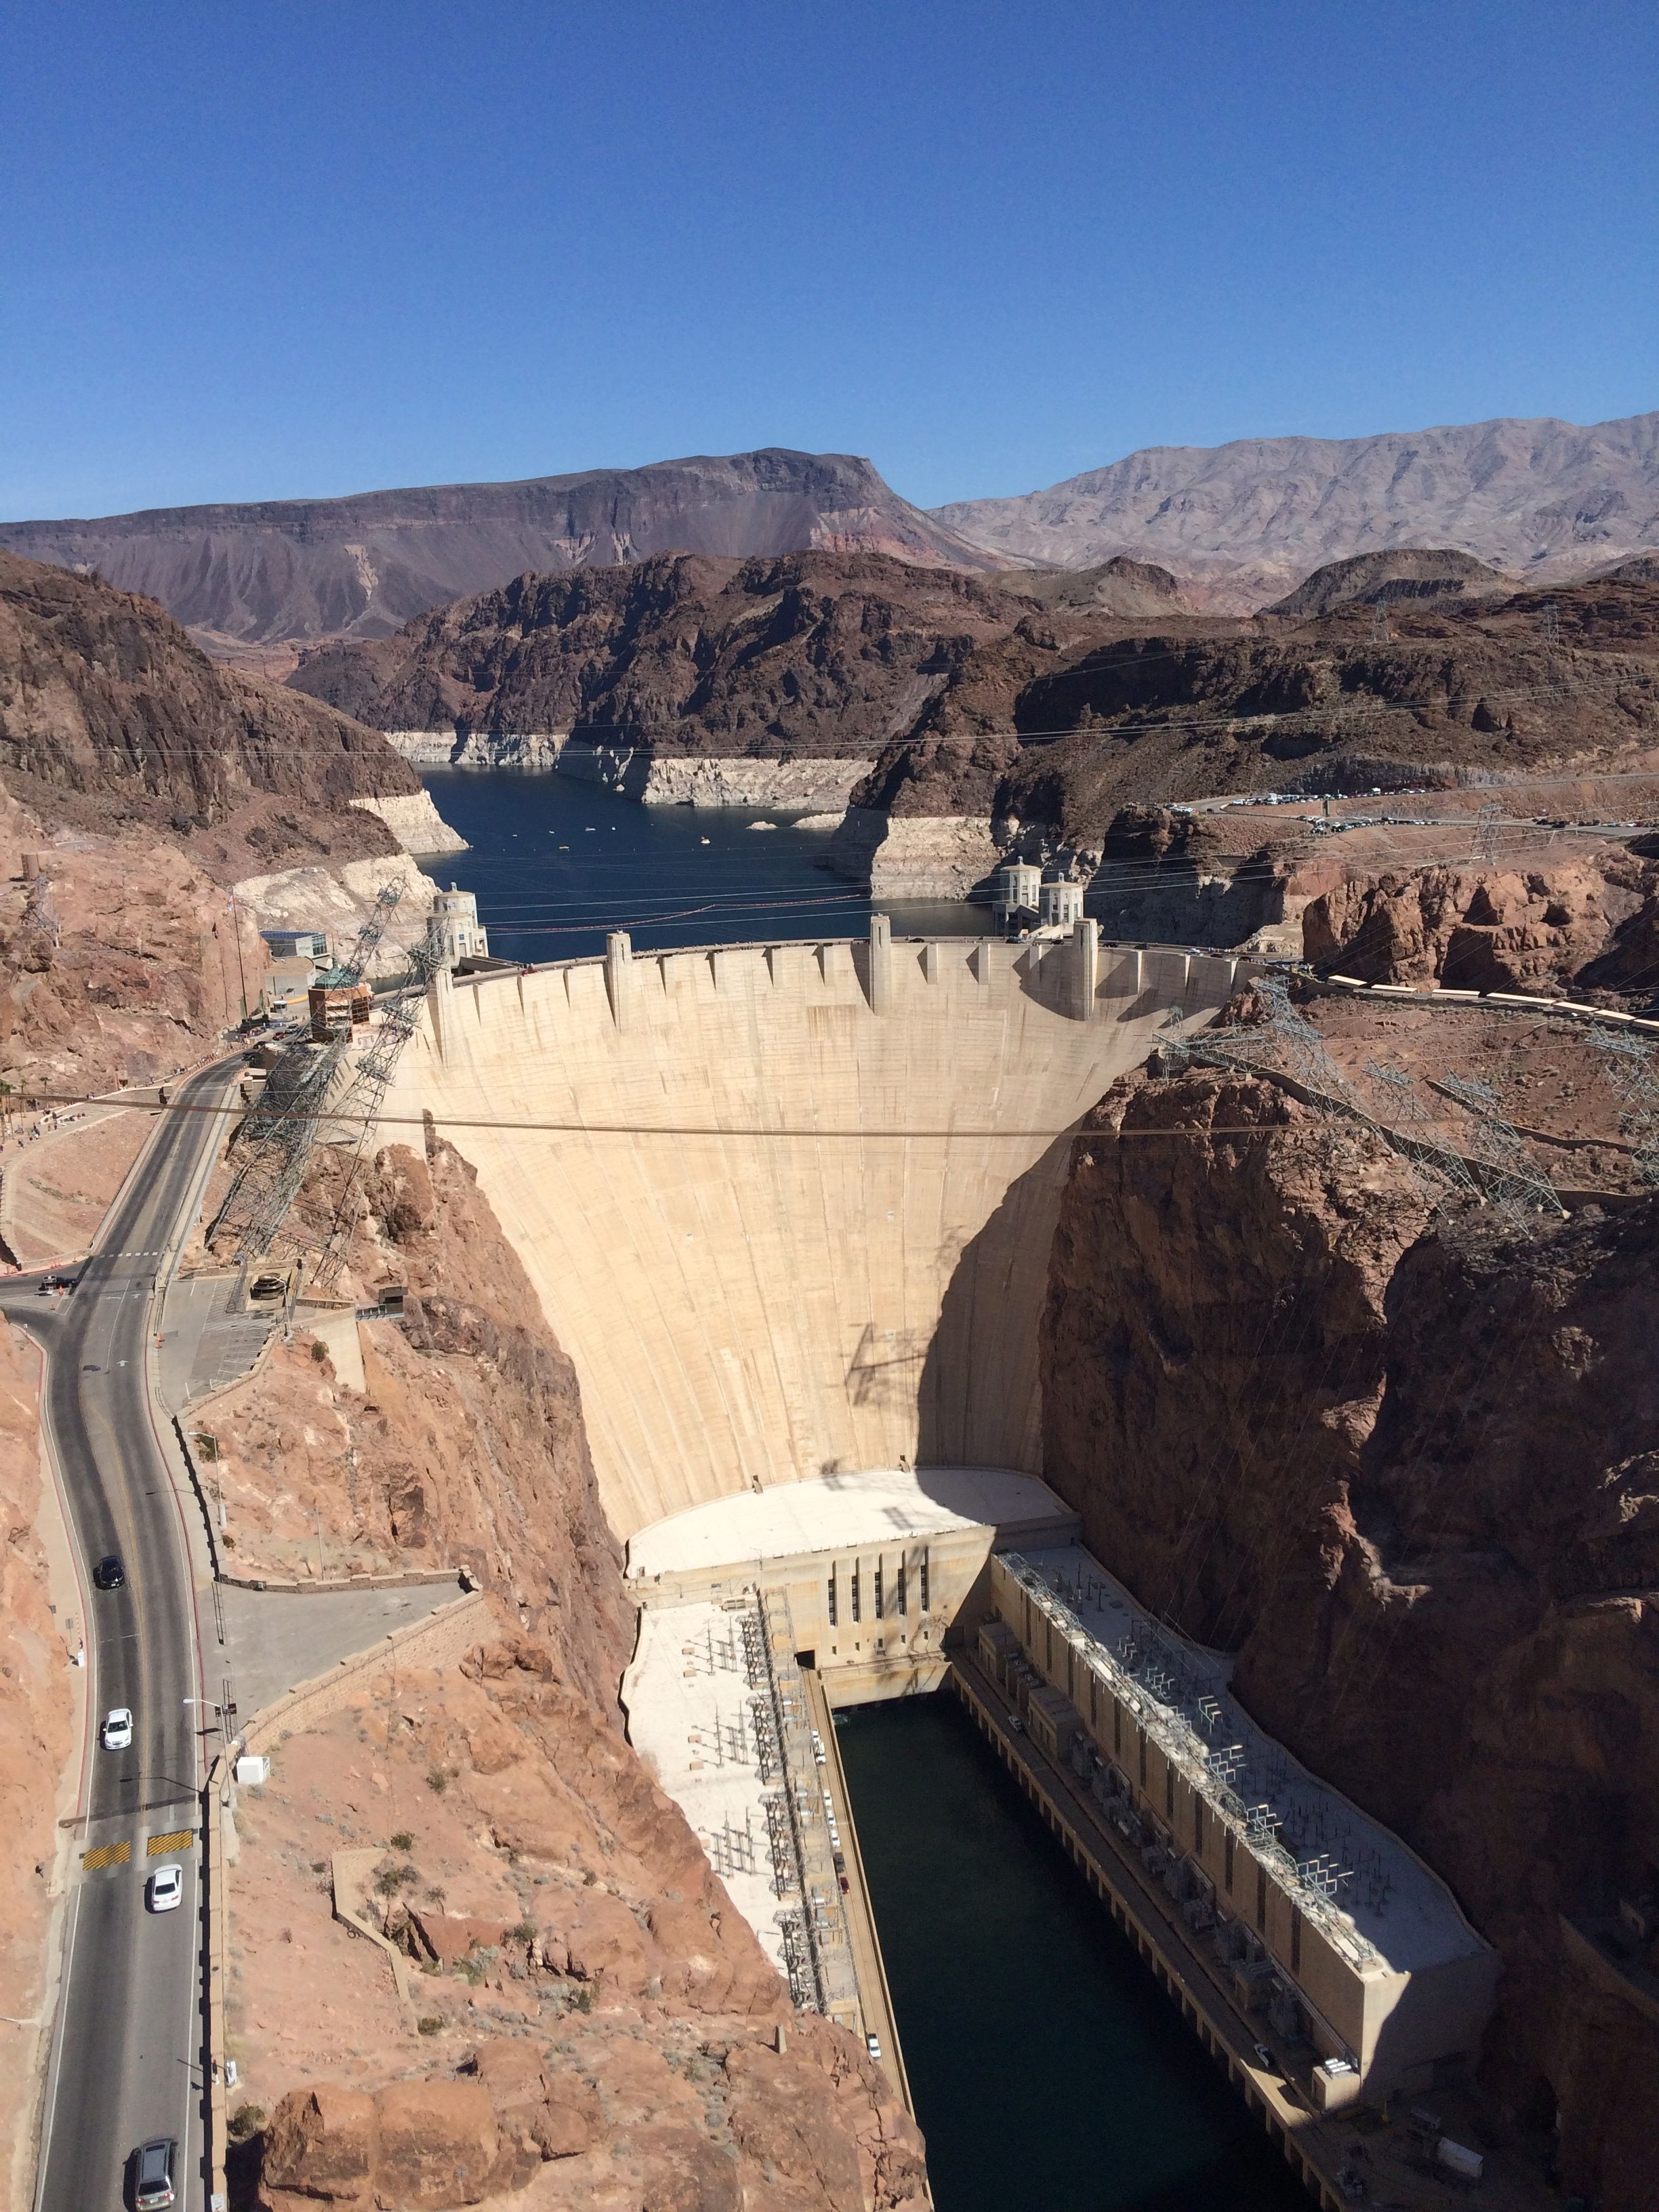 Hoover Dam from the Mike O'Callaghan–Pat Tillman Memorial Bridge